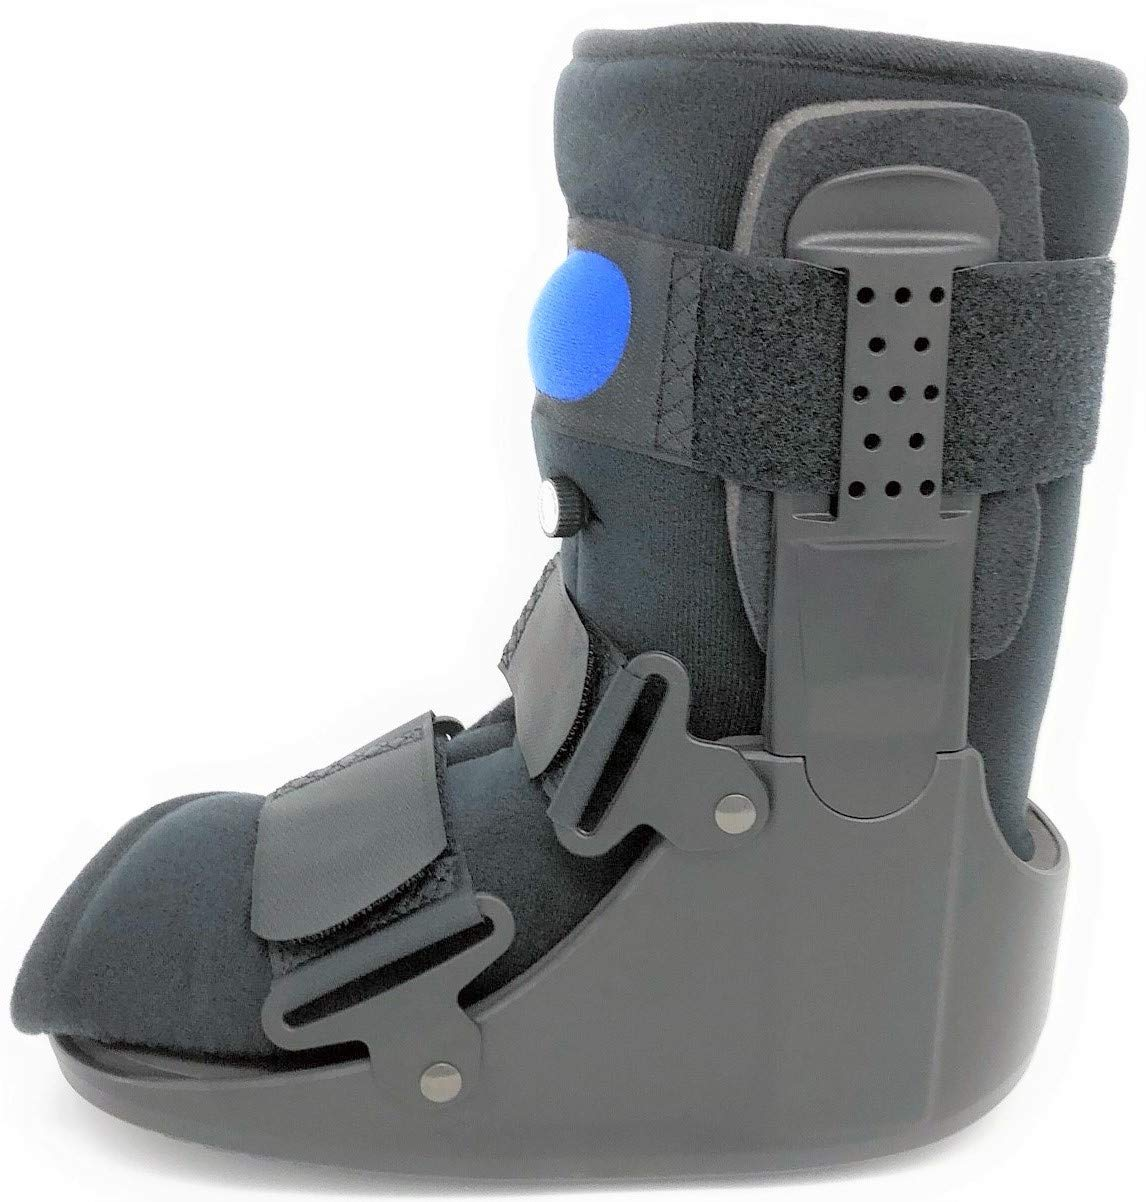 MB Medical Braces Low Top shipfree Air Deluxe or L0631 Boot L0 Fracture Medium